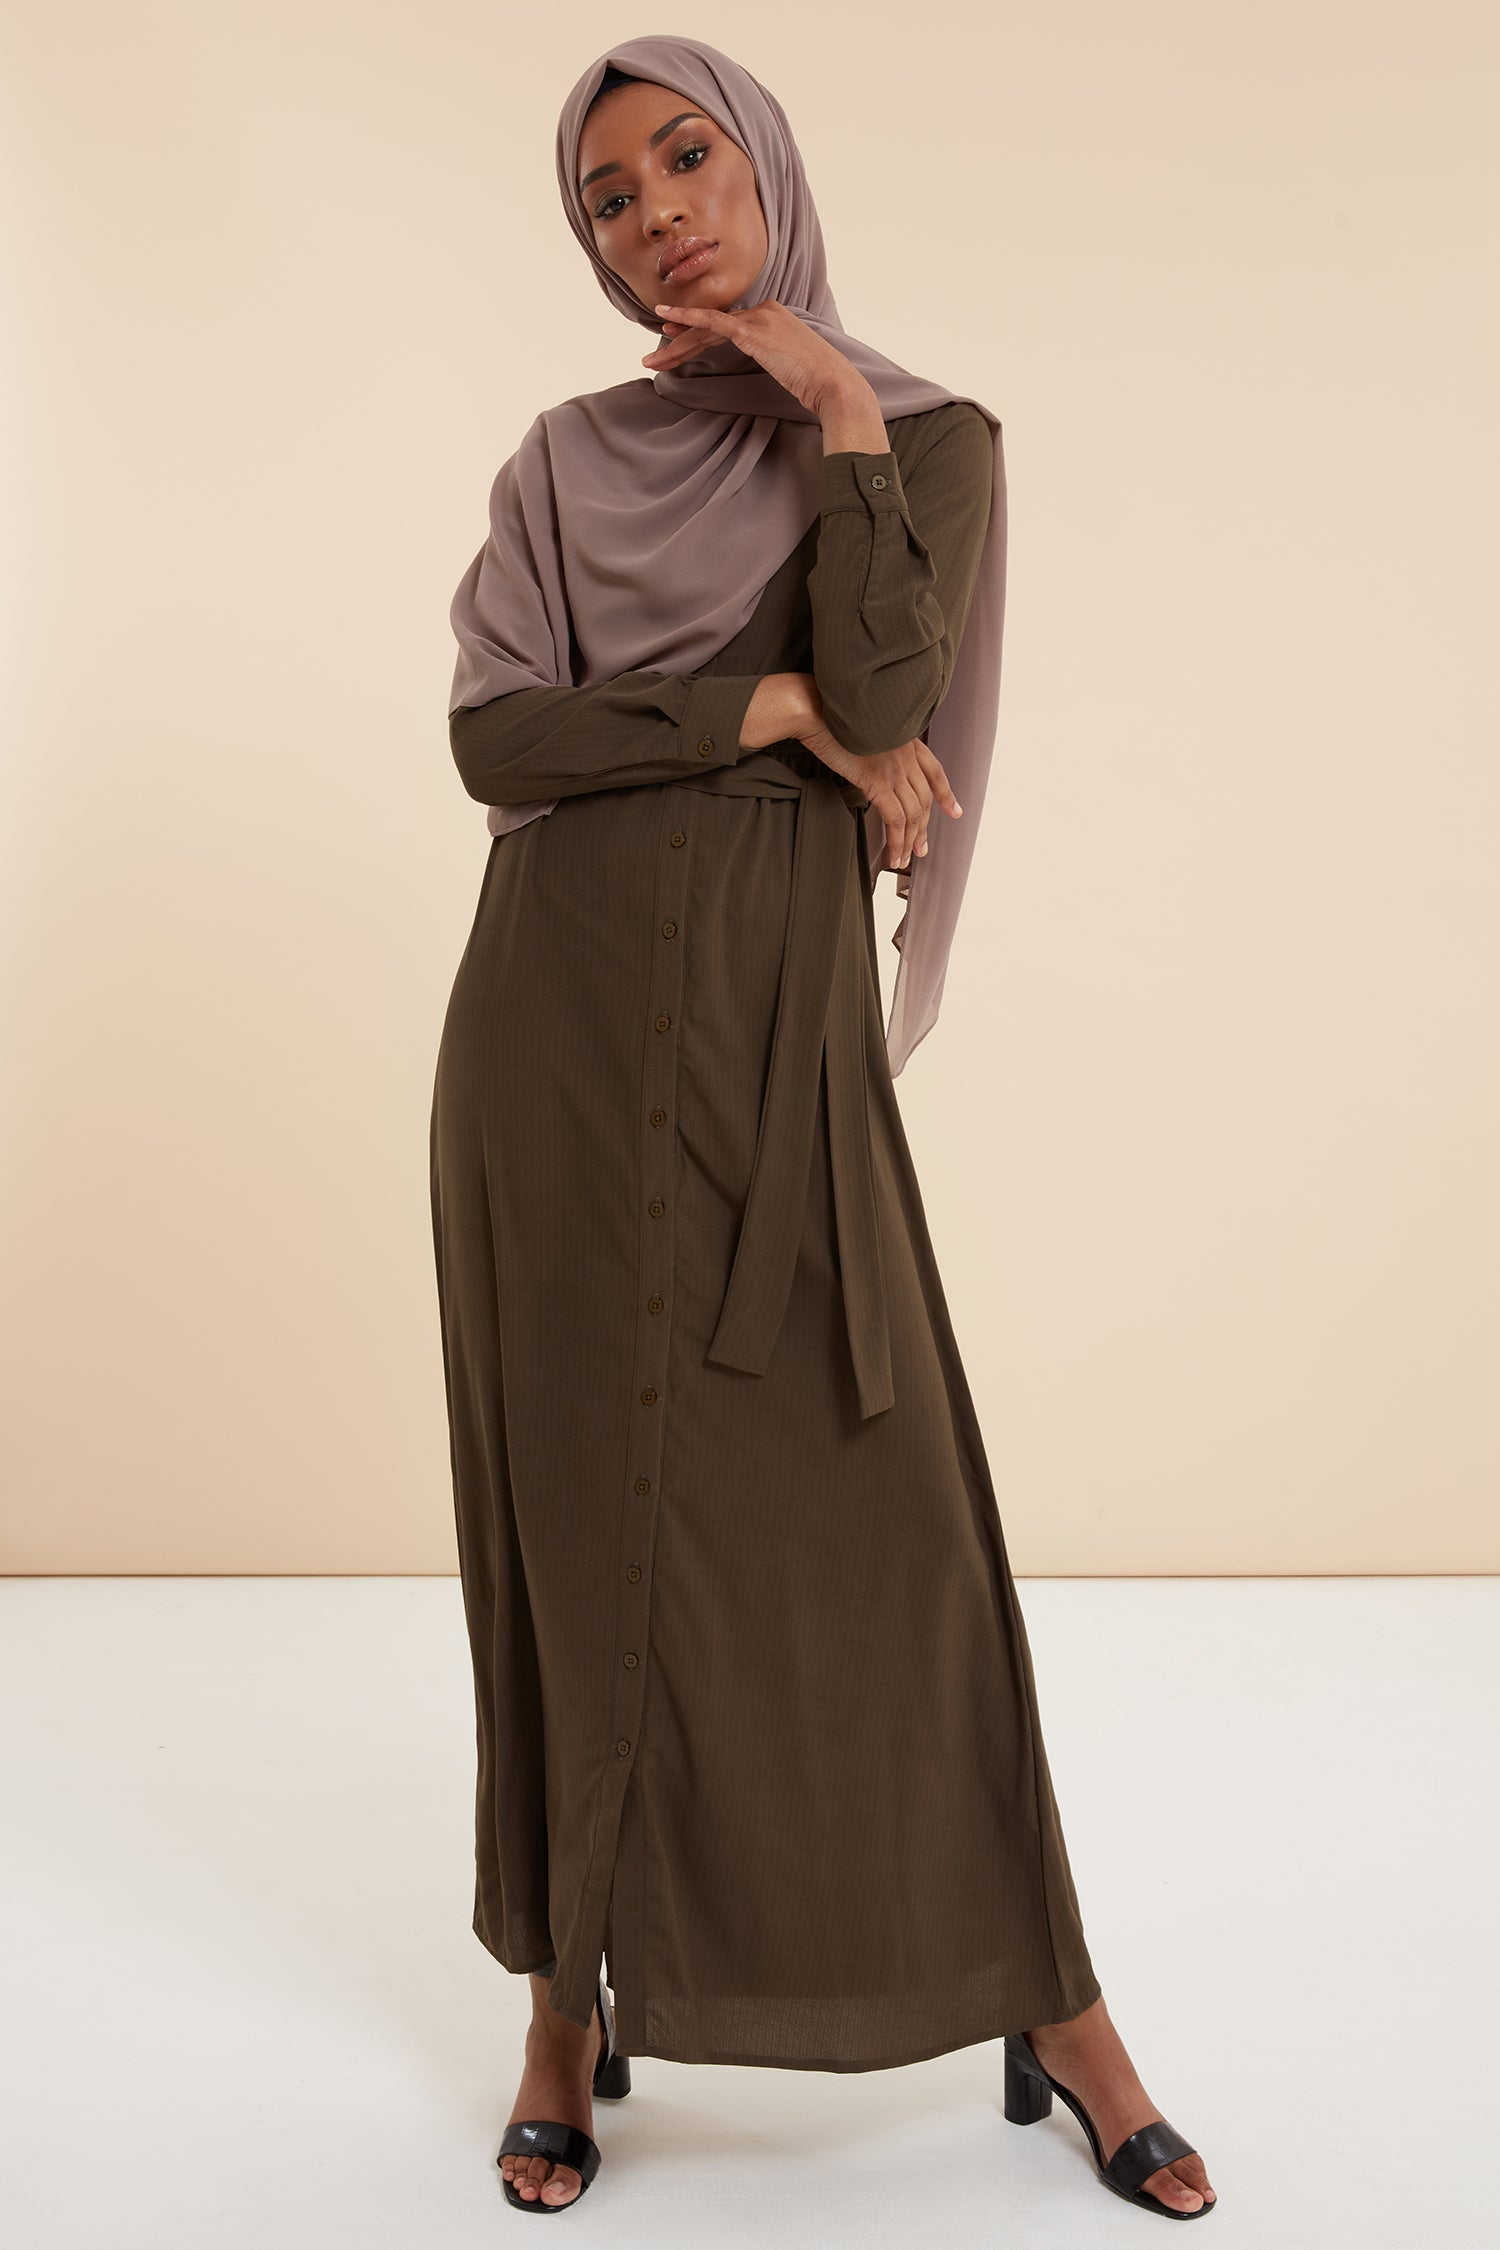 Abayas for work, london abayas, shirt abaya, green abaya, graduation abaya, designer abayas, occasional abayas